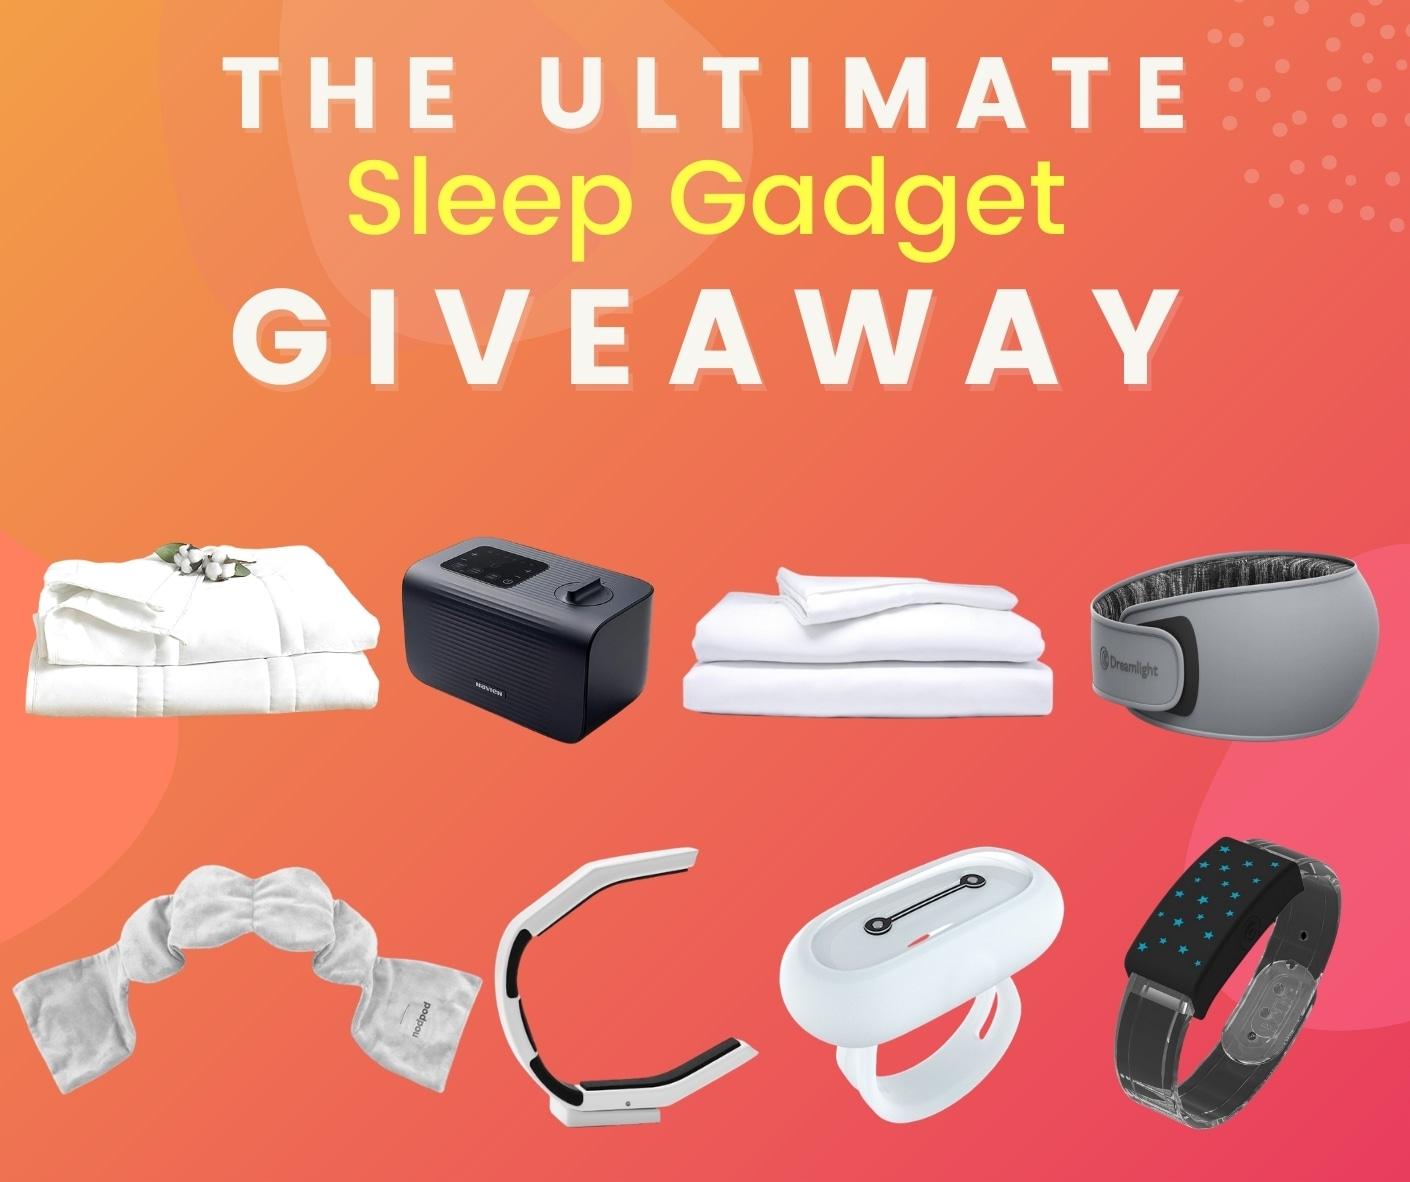 Maximize Your Sleep Gadget Giveaway! $1200 in prizes up for grabs.